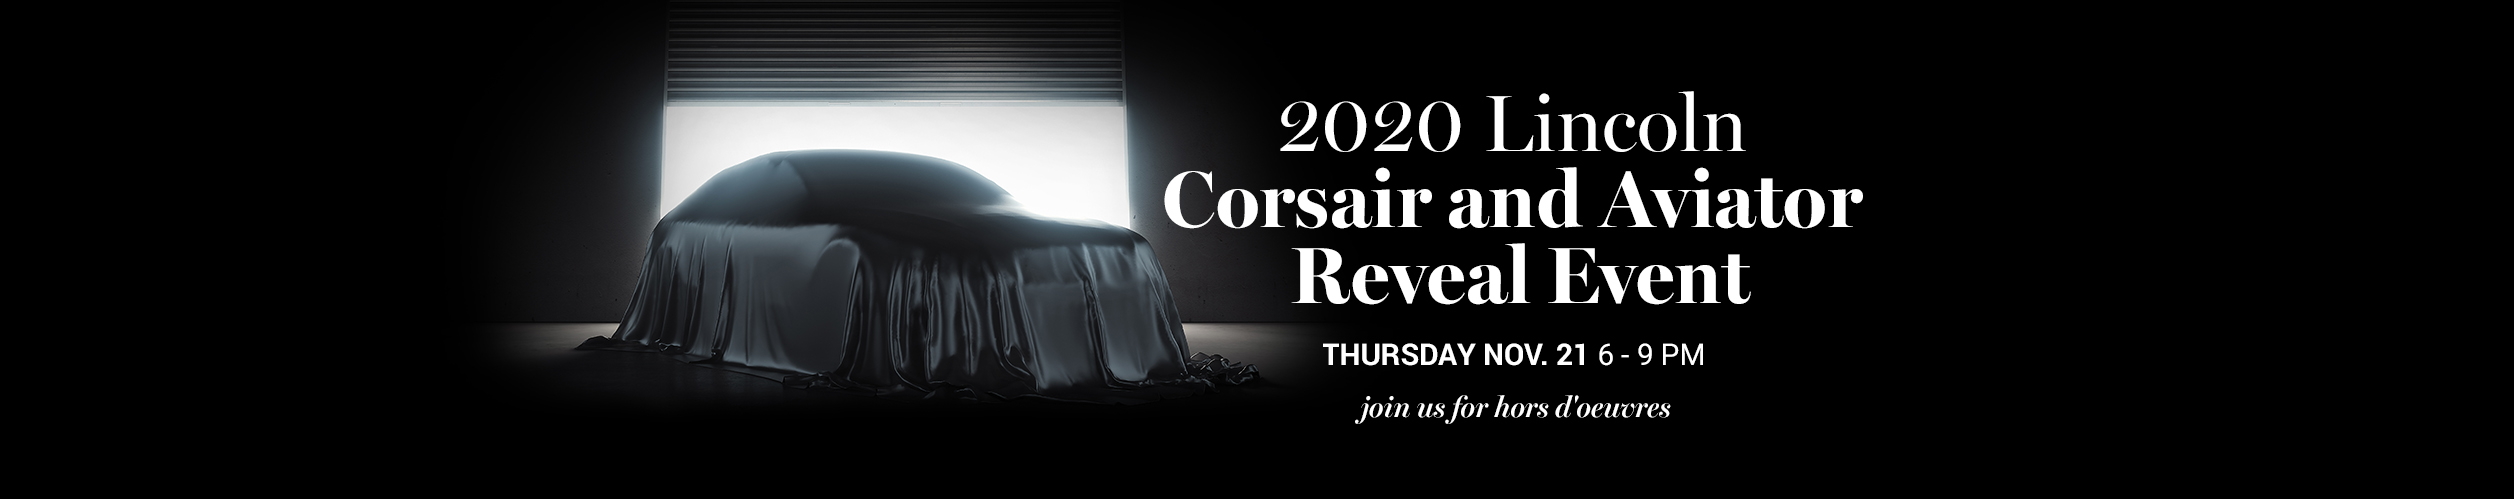 2020 Lincoln Corsair and Aviator Reveal Event